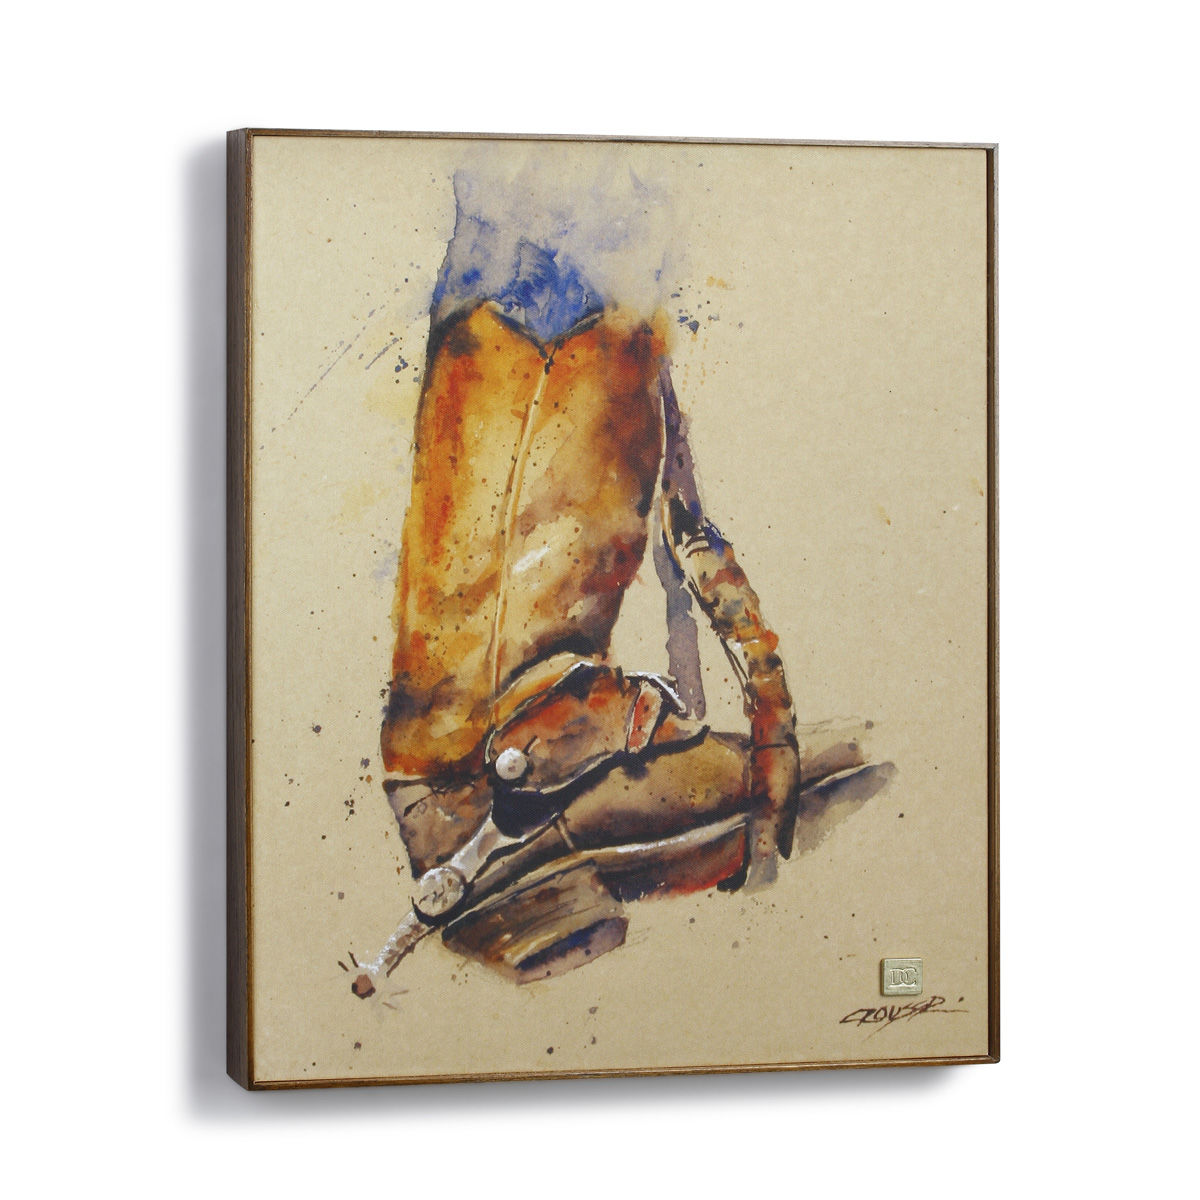 Dm3005210491 39 39 Tools Of The Trade 39 39 Western Wall Art